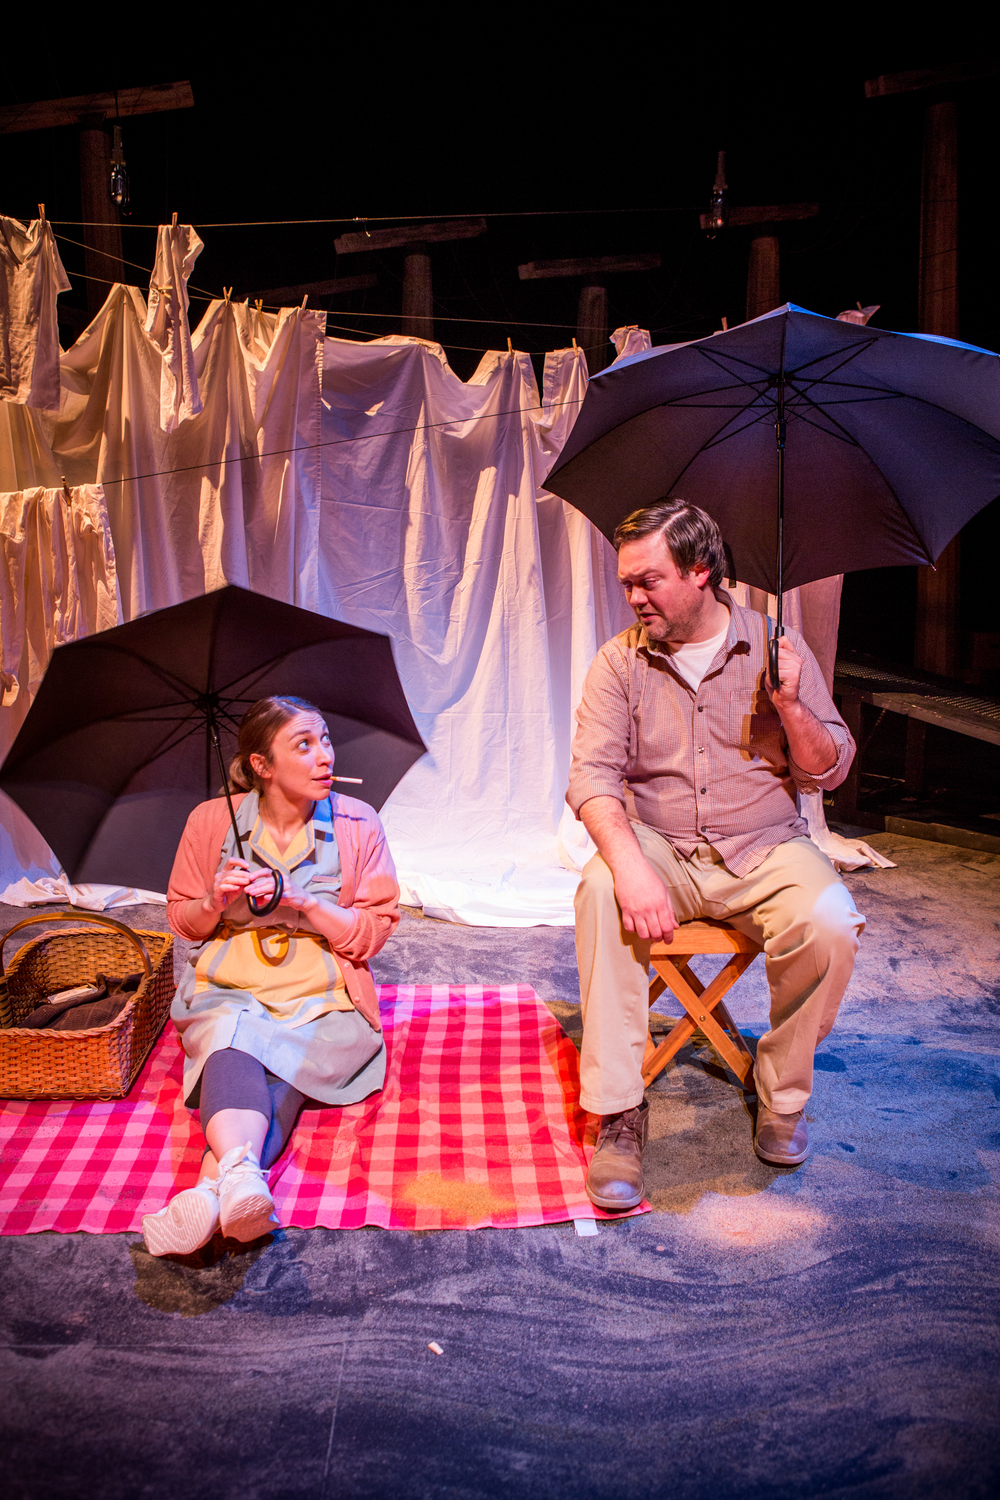 Laws of Thermodynamics - Production Photos - 20150215 - 0054.jpg